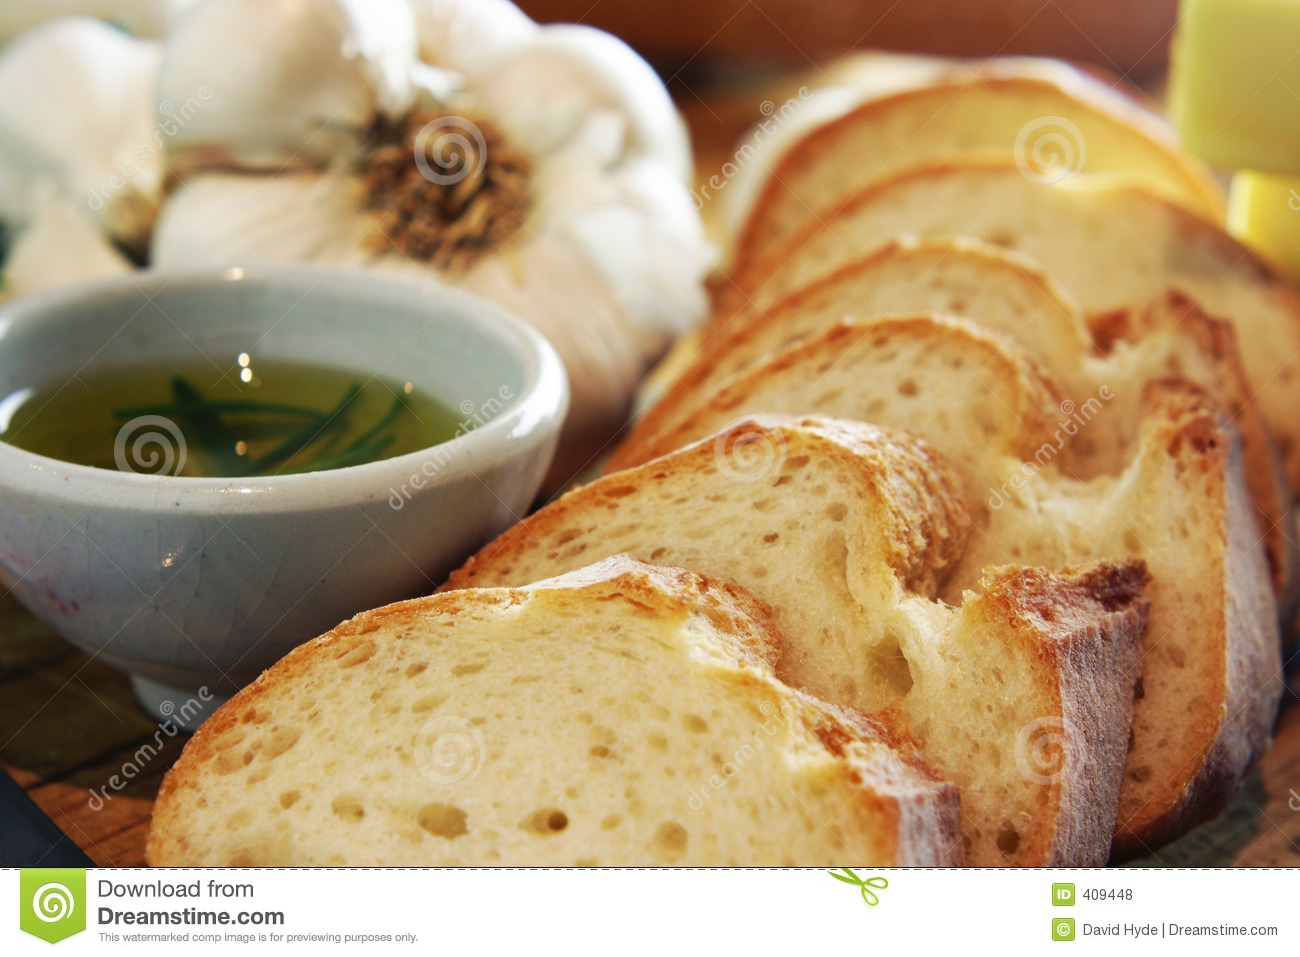 ... shot of garlic bread preparation. Includes rosemary infused olive oil